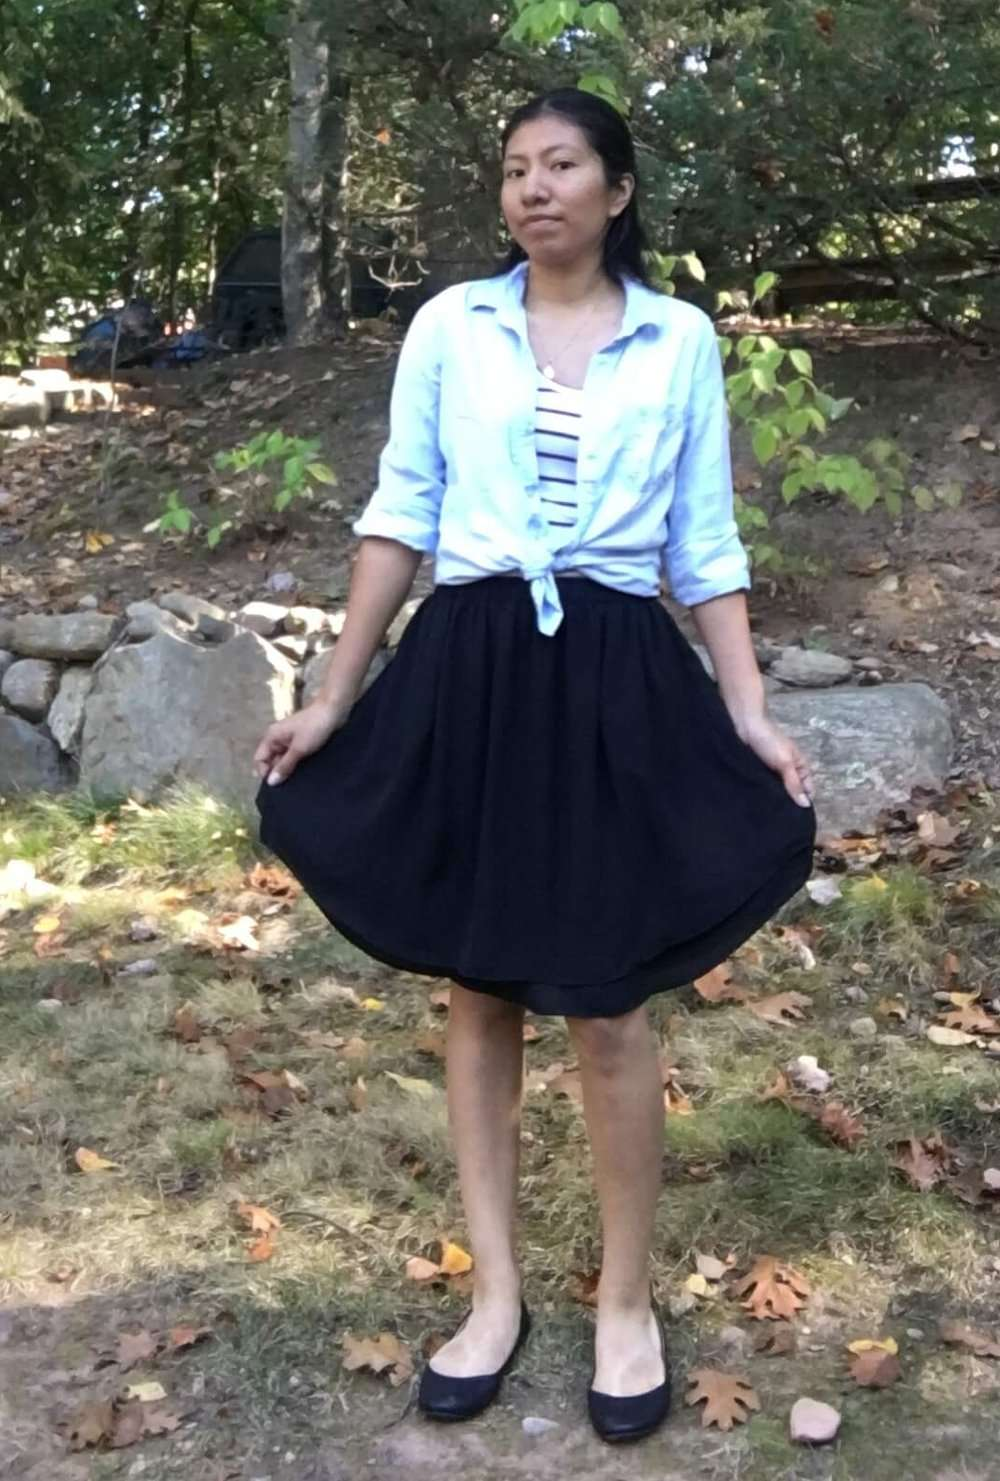 Striped Tank (tucked) + Chambray Top (open and tied) + Knee-length A-Line Skirt + Ballet Flats